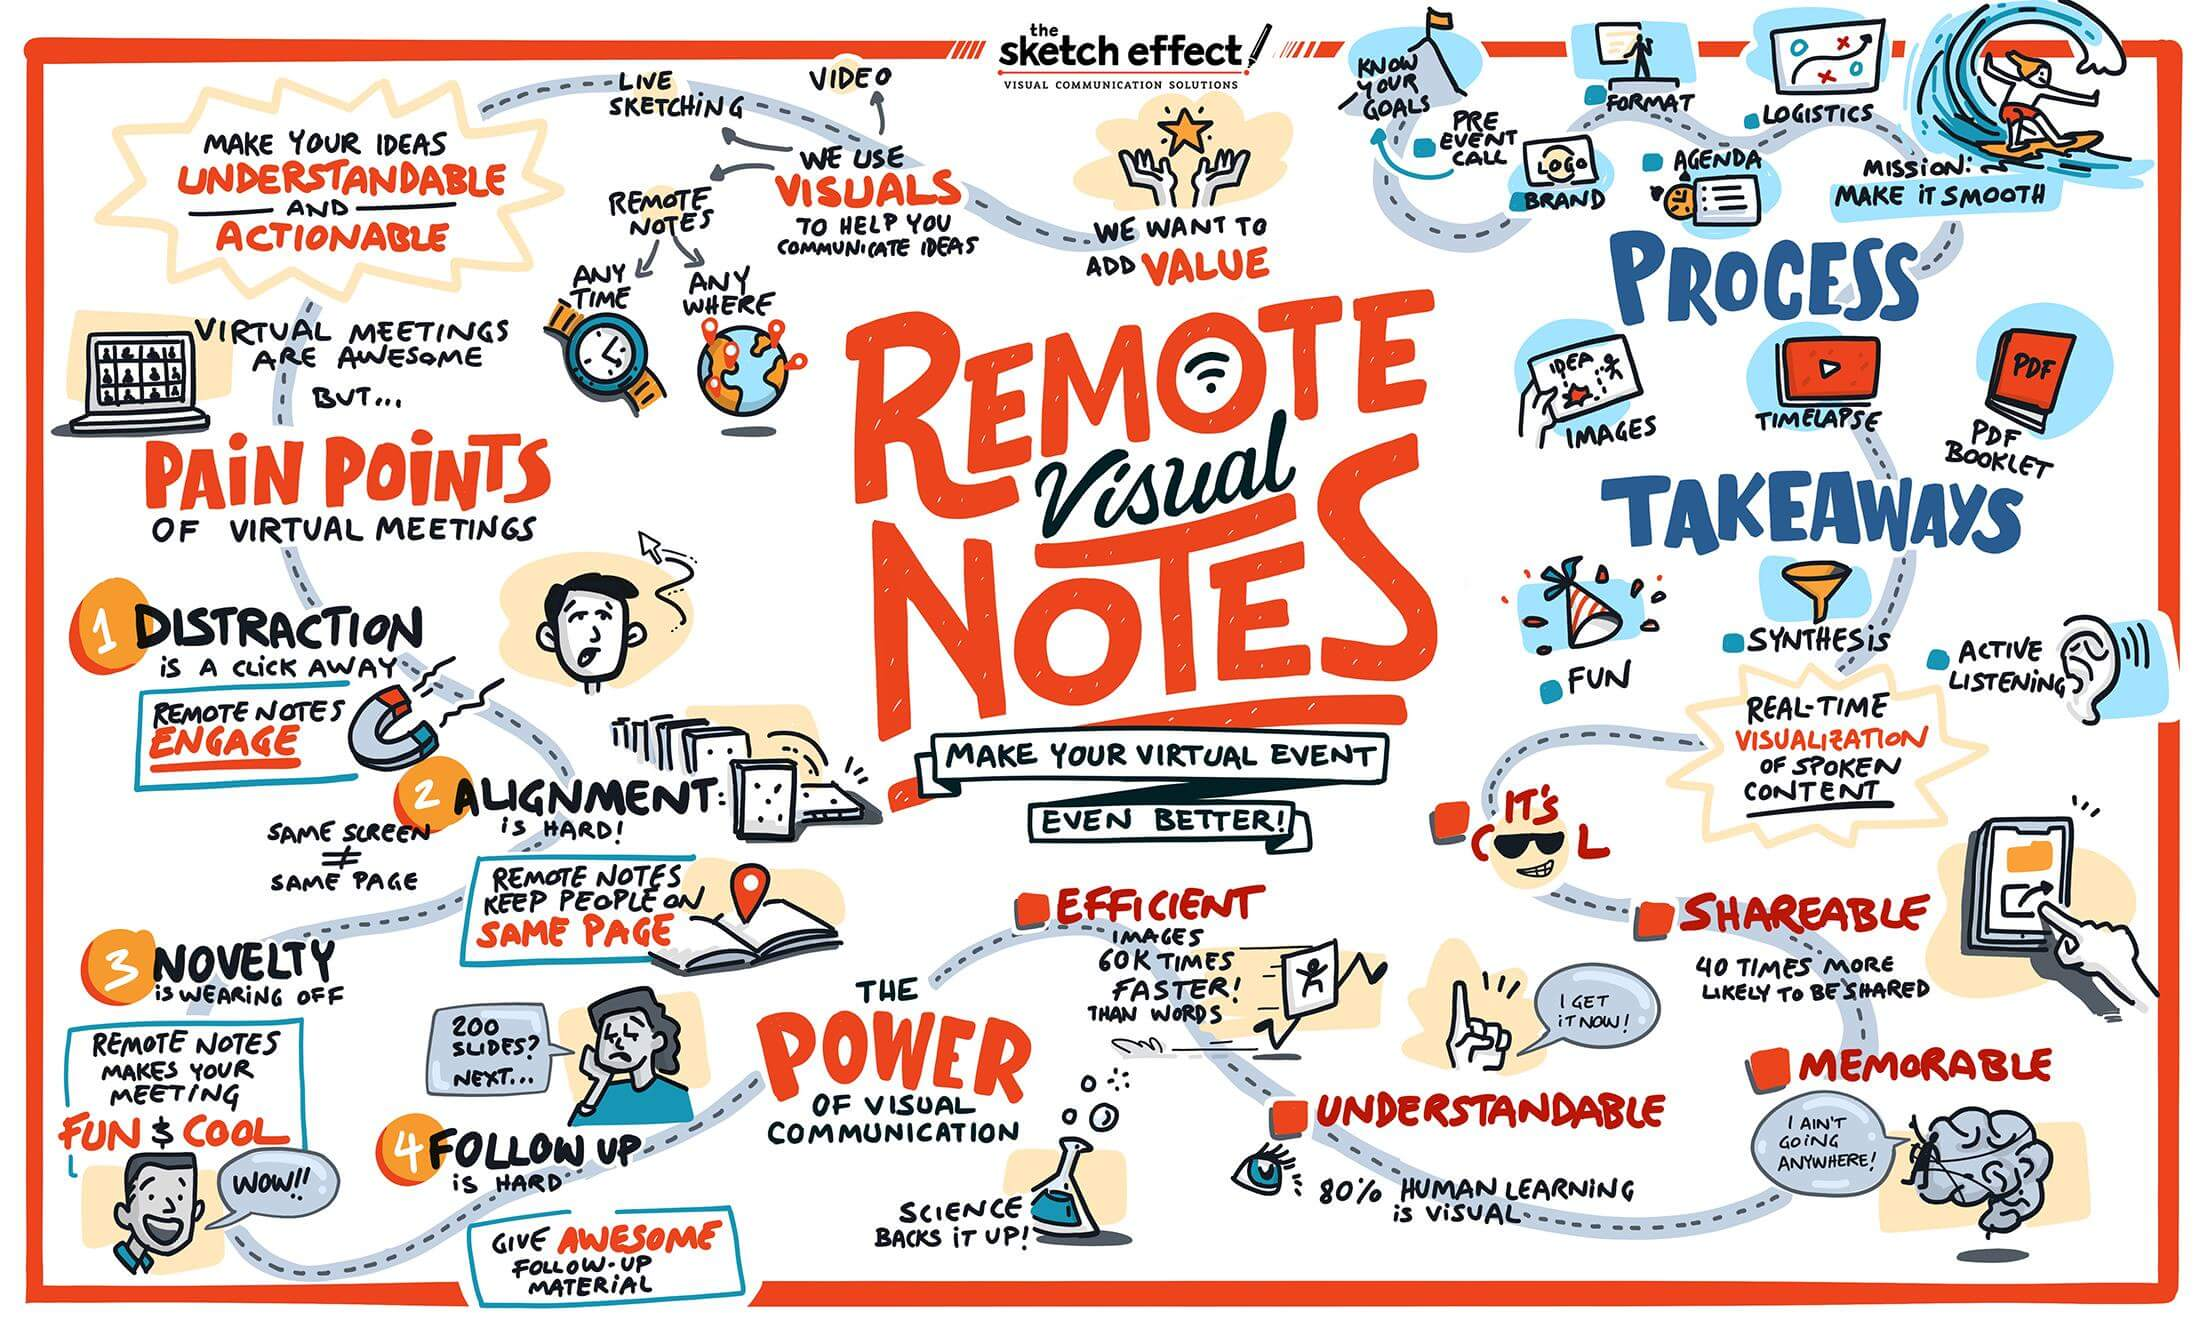 Graphic recording by The Sketch Effect about Remote Visual Notes